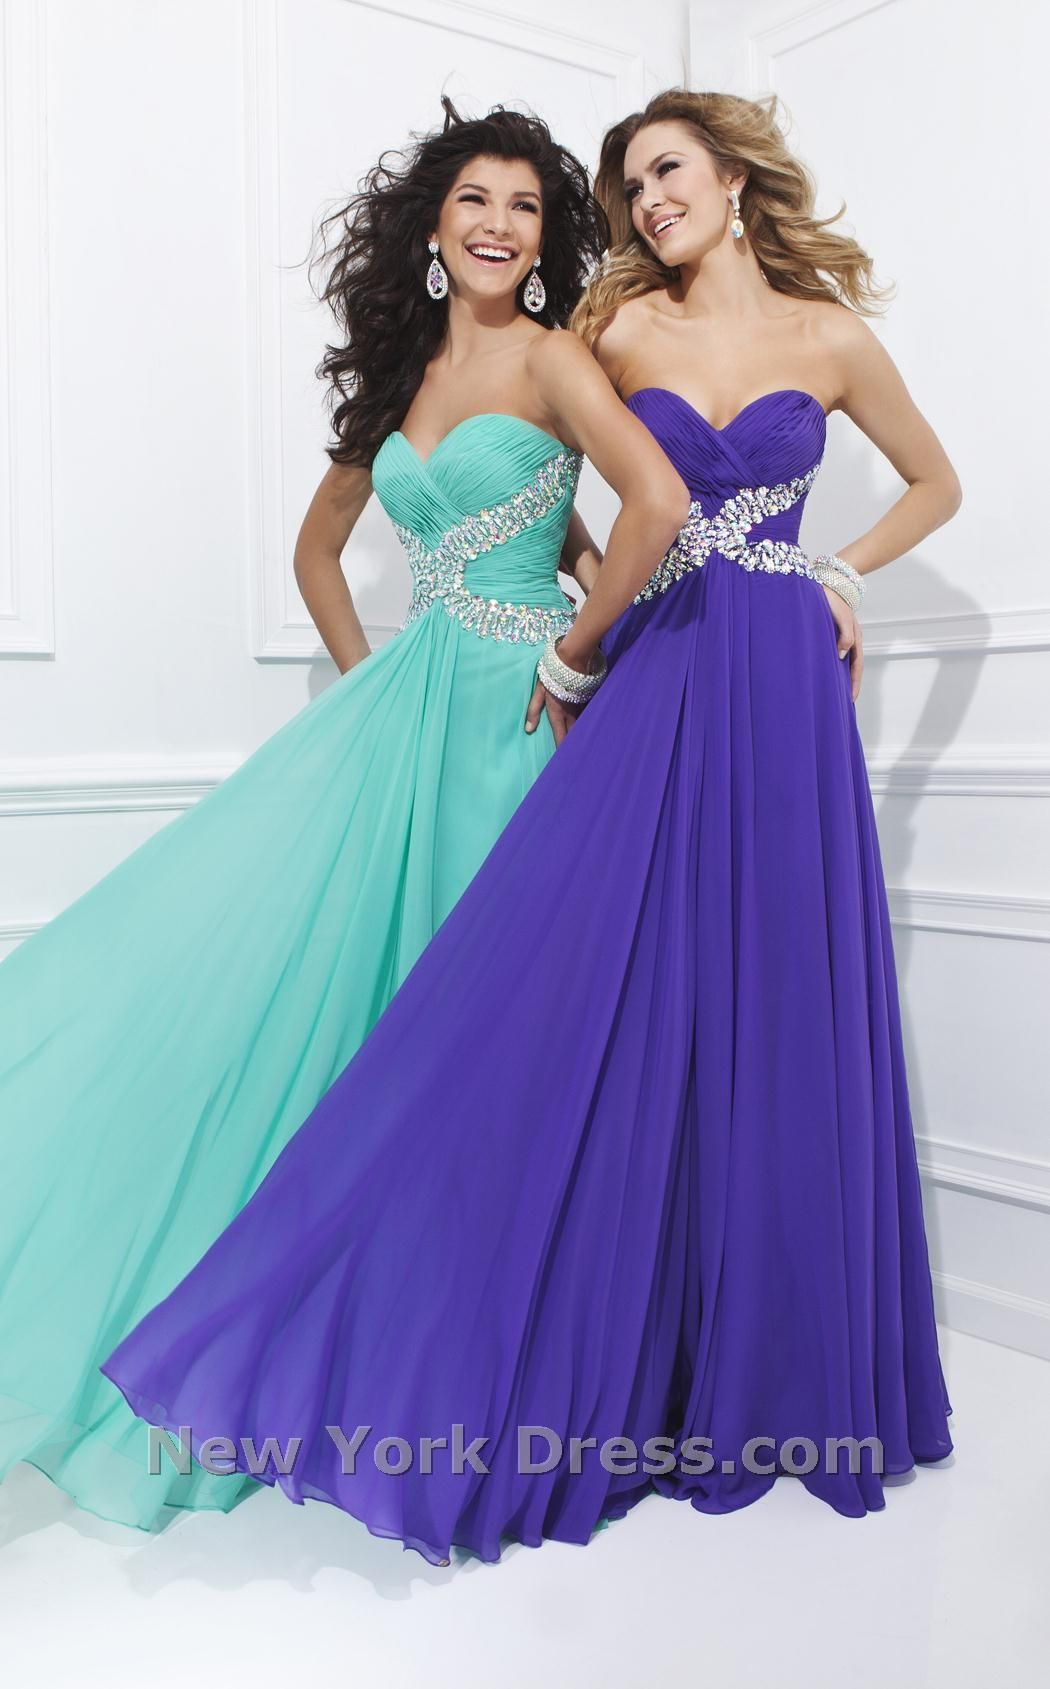 Flowing gown with embellished waist tony bowls tbe beautiful